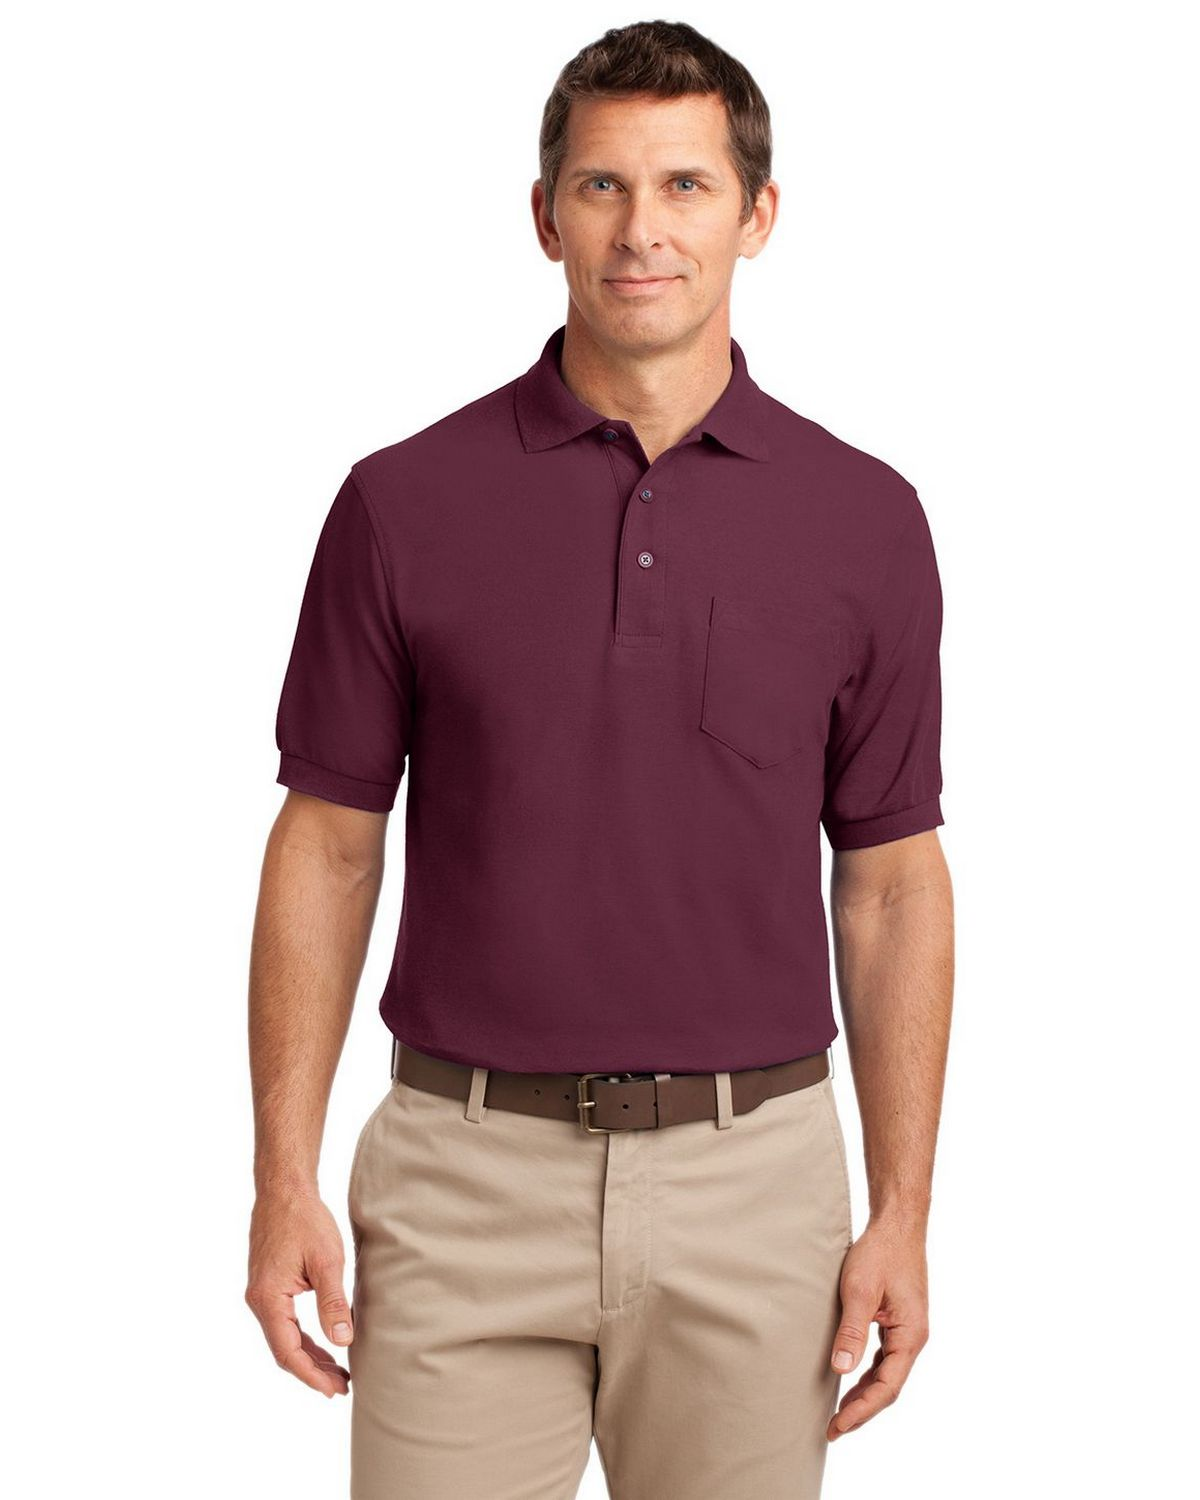 Port Authority K500P Men's Silk Touch Polo with Pocket - Burgundy - XS #silk